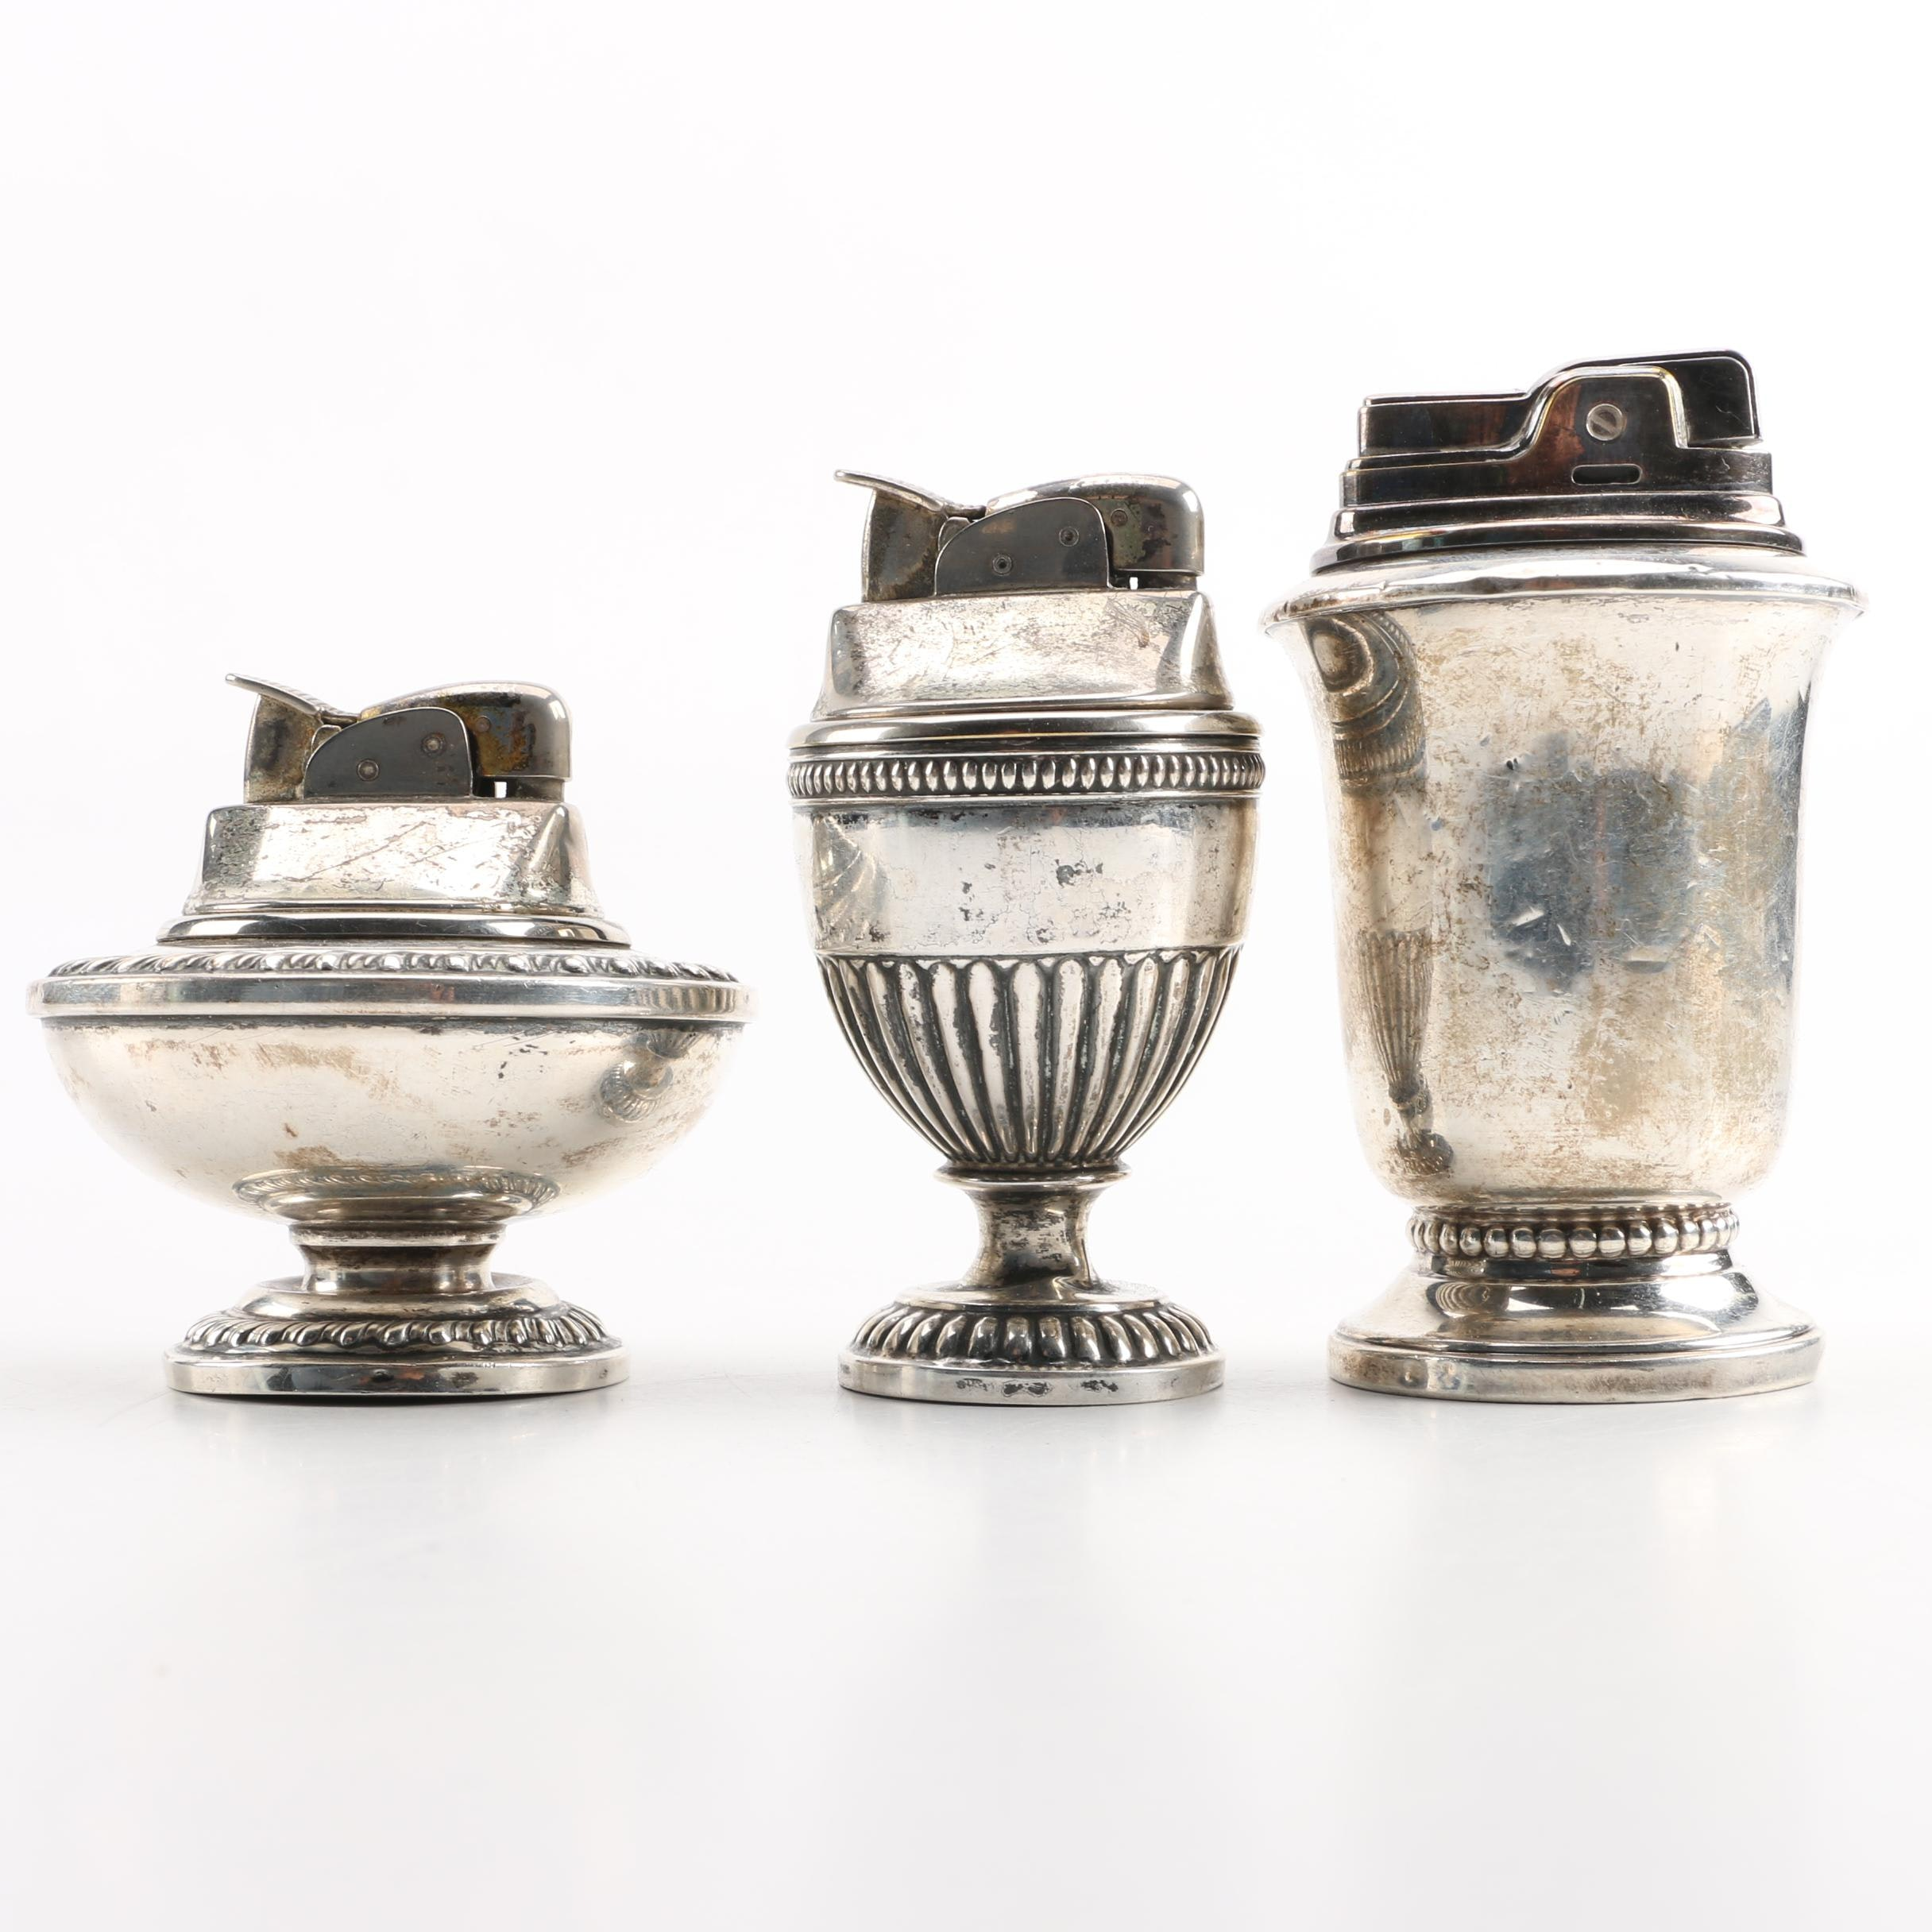 Ronson and Hallmark Sterling Silver Cased Table Lighters